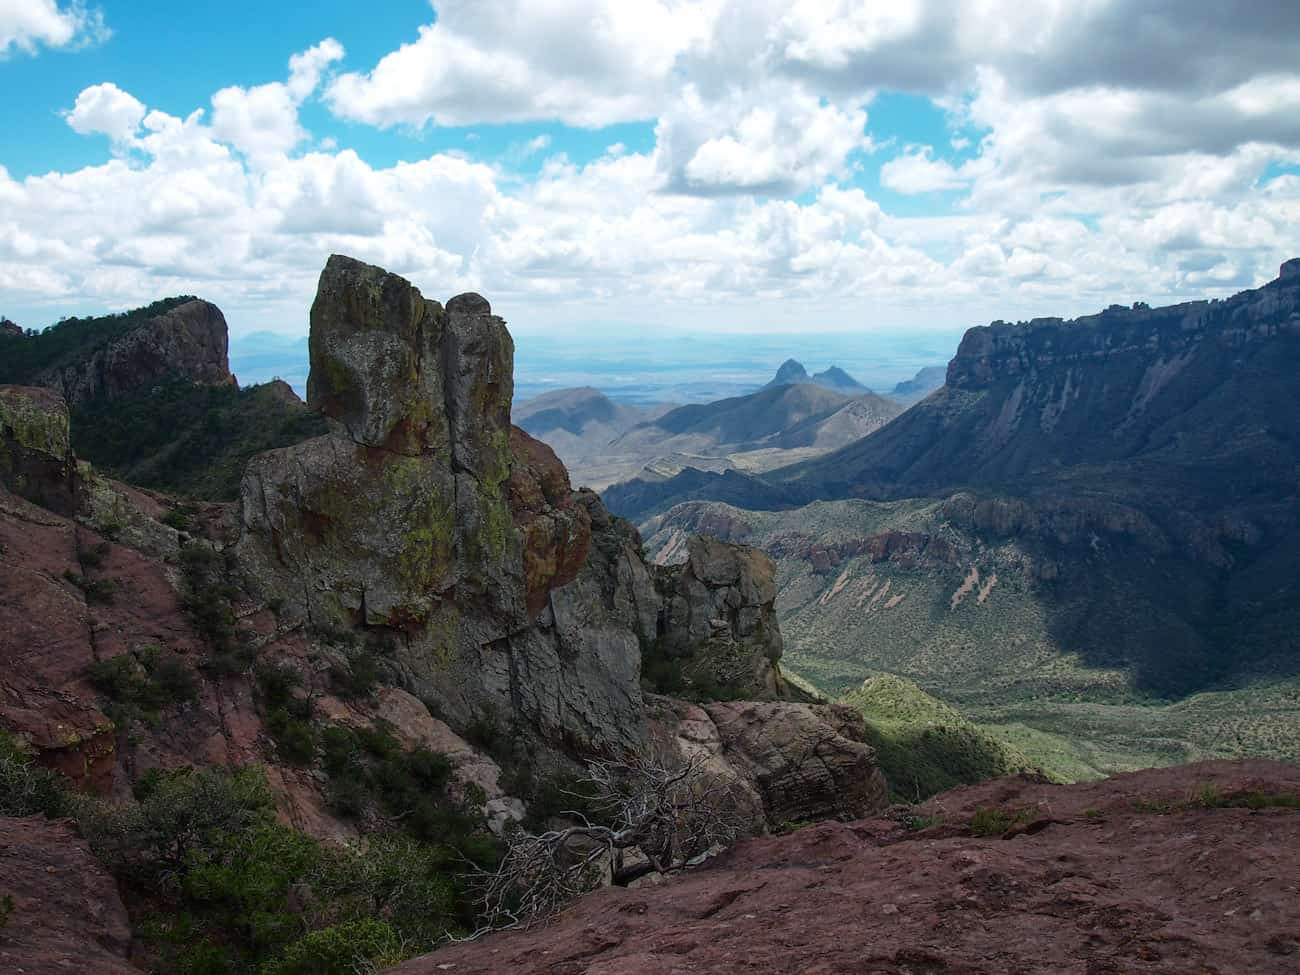 black singles in big bend national park Welcome to the big bend national park information guide here you will find all you need to know about the natural history of the park learn about the geology, trees, mammals, birds, or.